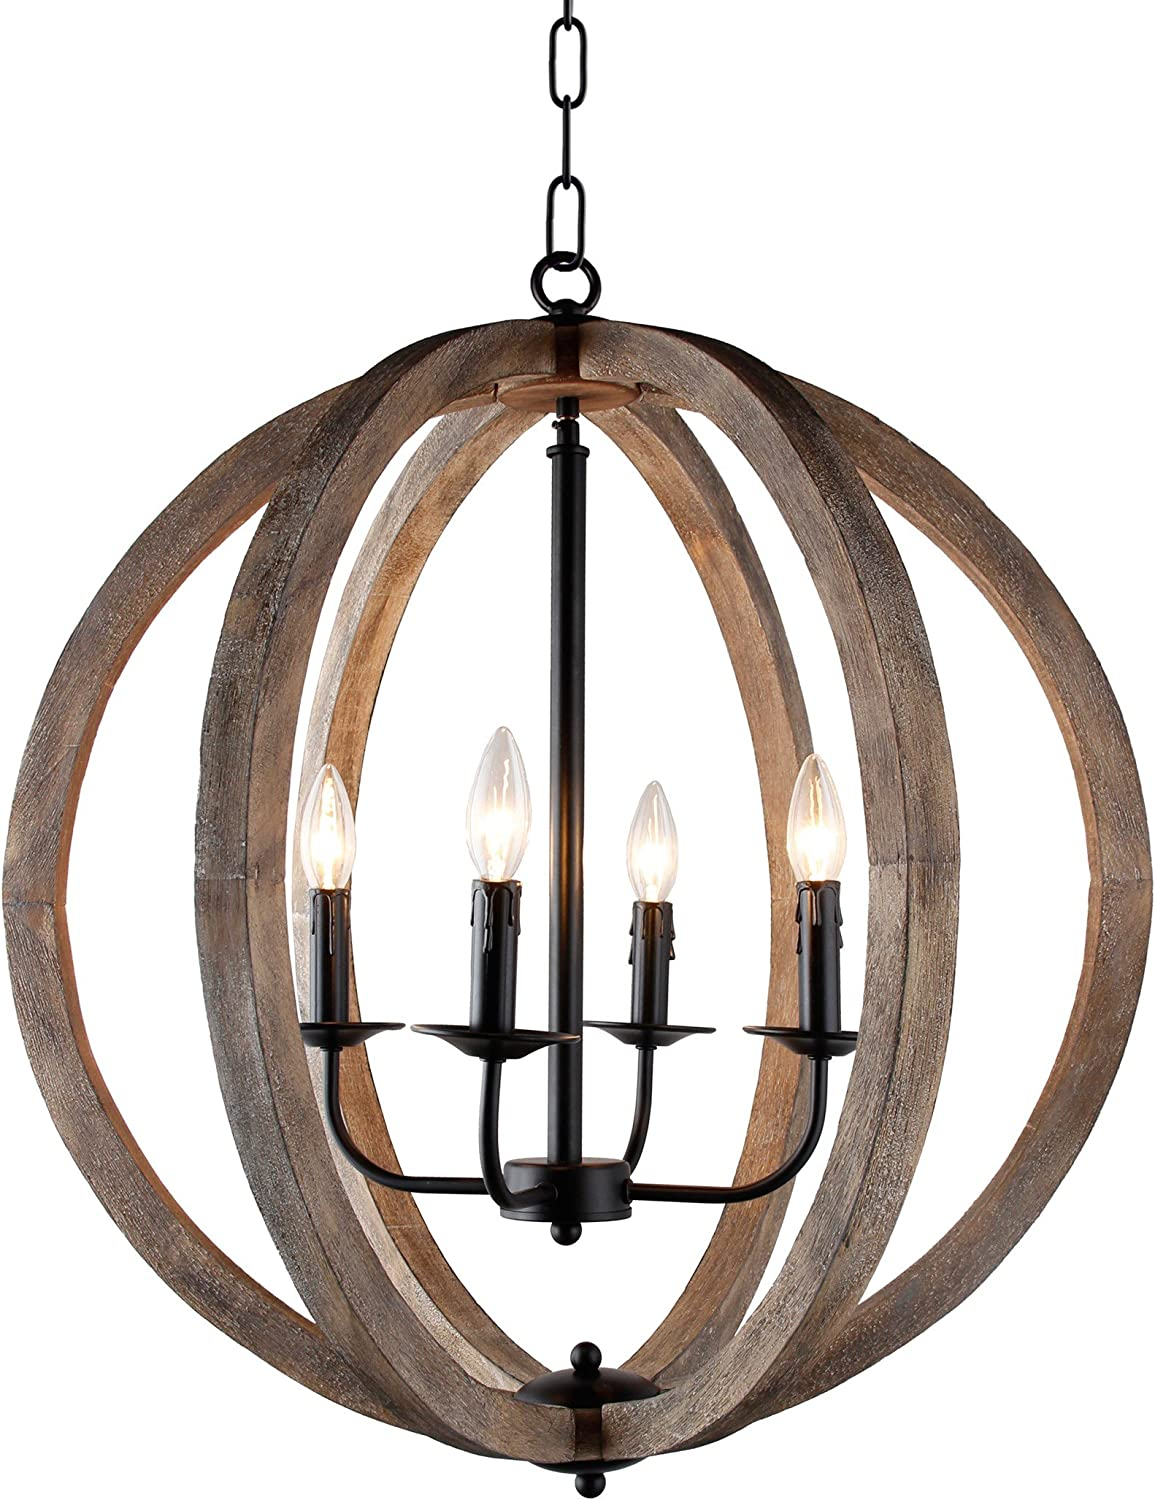 Stanton 4 Light Candle Style Rustic Chandelier Wood Frame Orb Foyer Chandelier 24 4 H X 27 5 W Home Kitchen Amazon Com